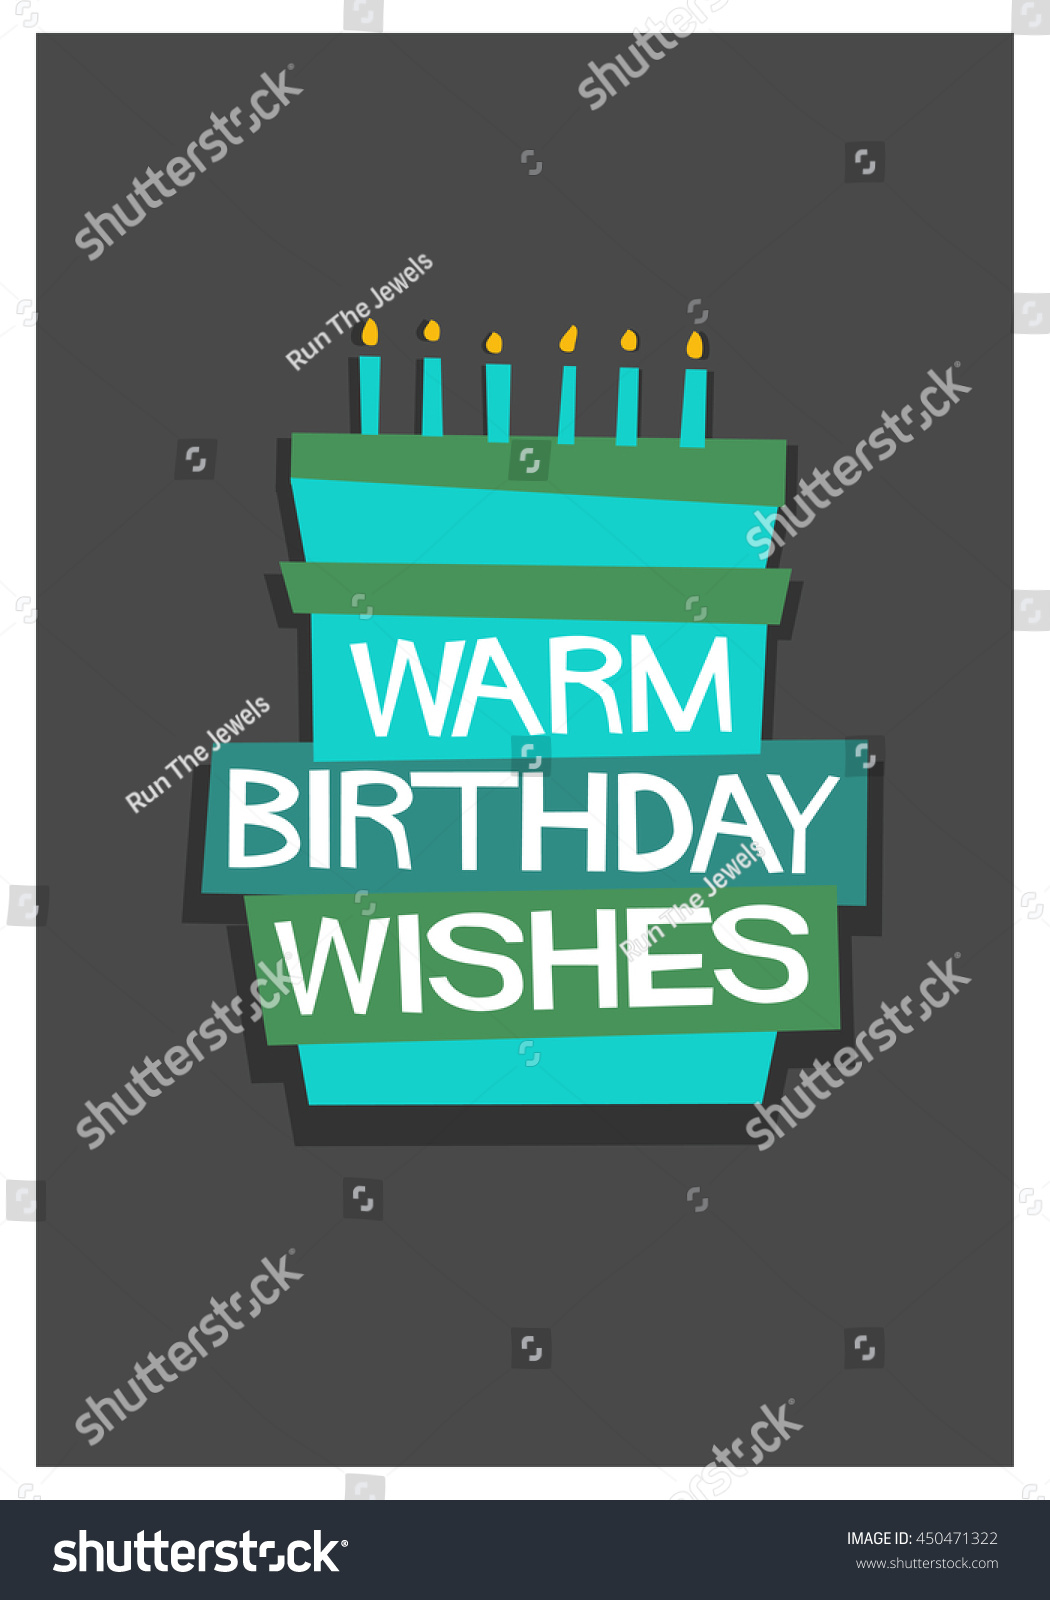 birthday wishes poster making ; stock-vector--warm-birthday-wishes-written-on-a-cake-vector-illustration-in-flat-style-poster-design-450471322